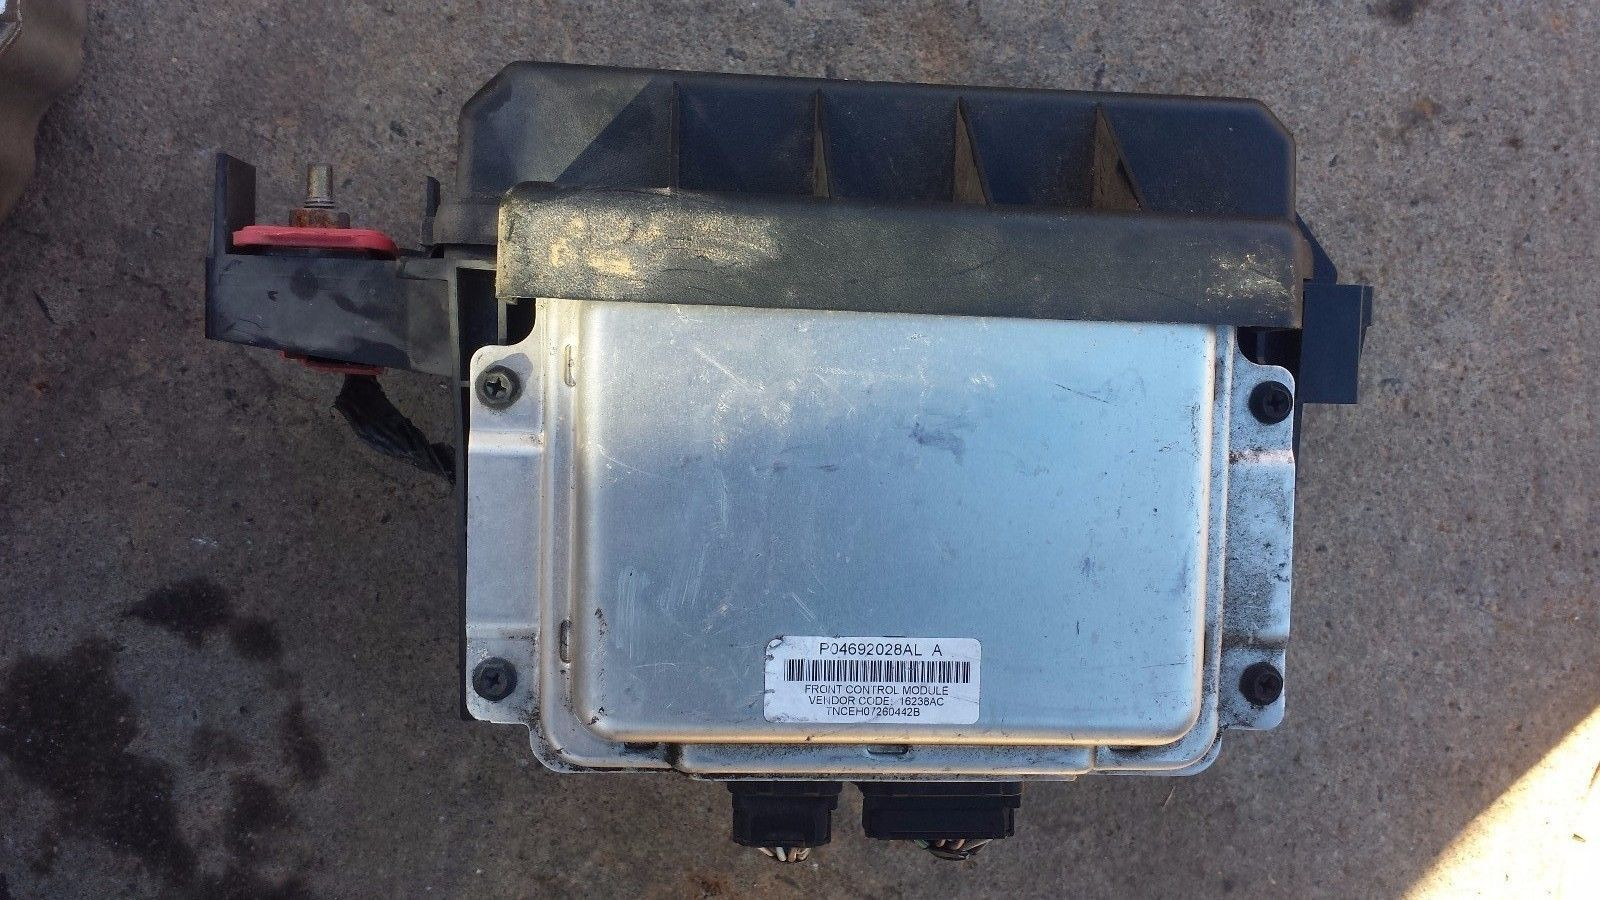 06 Dodge P04692028al Charger Chrysler 300c Tipm Fuse Box P04692031am A